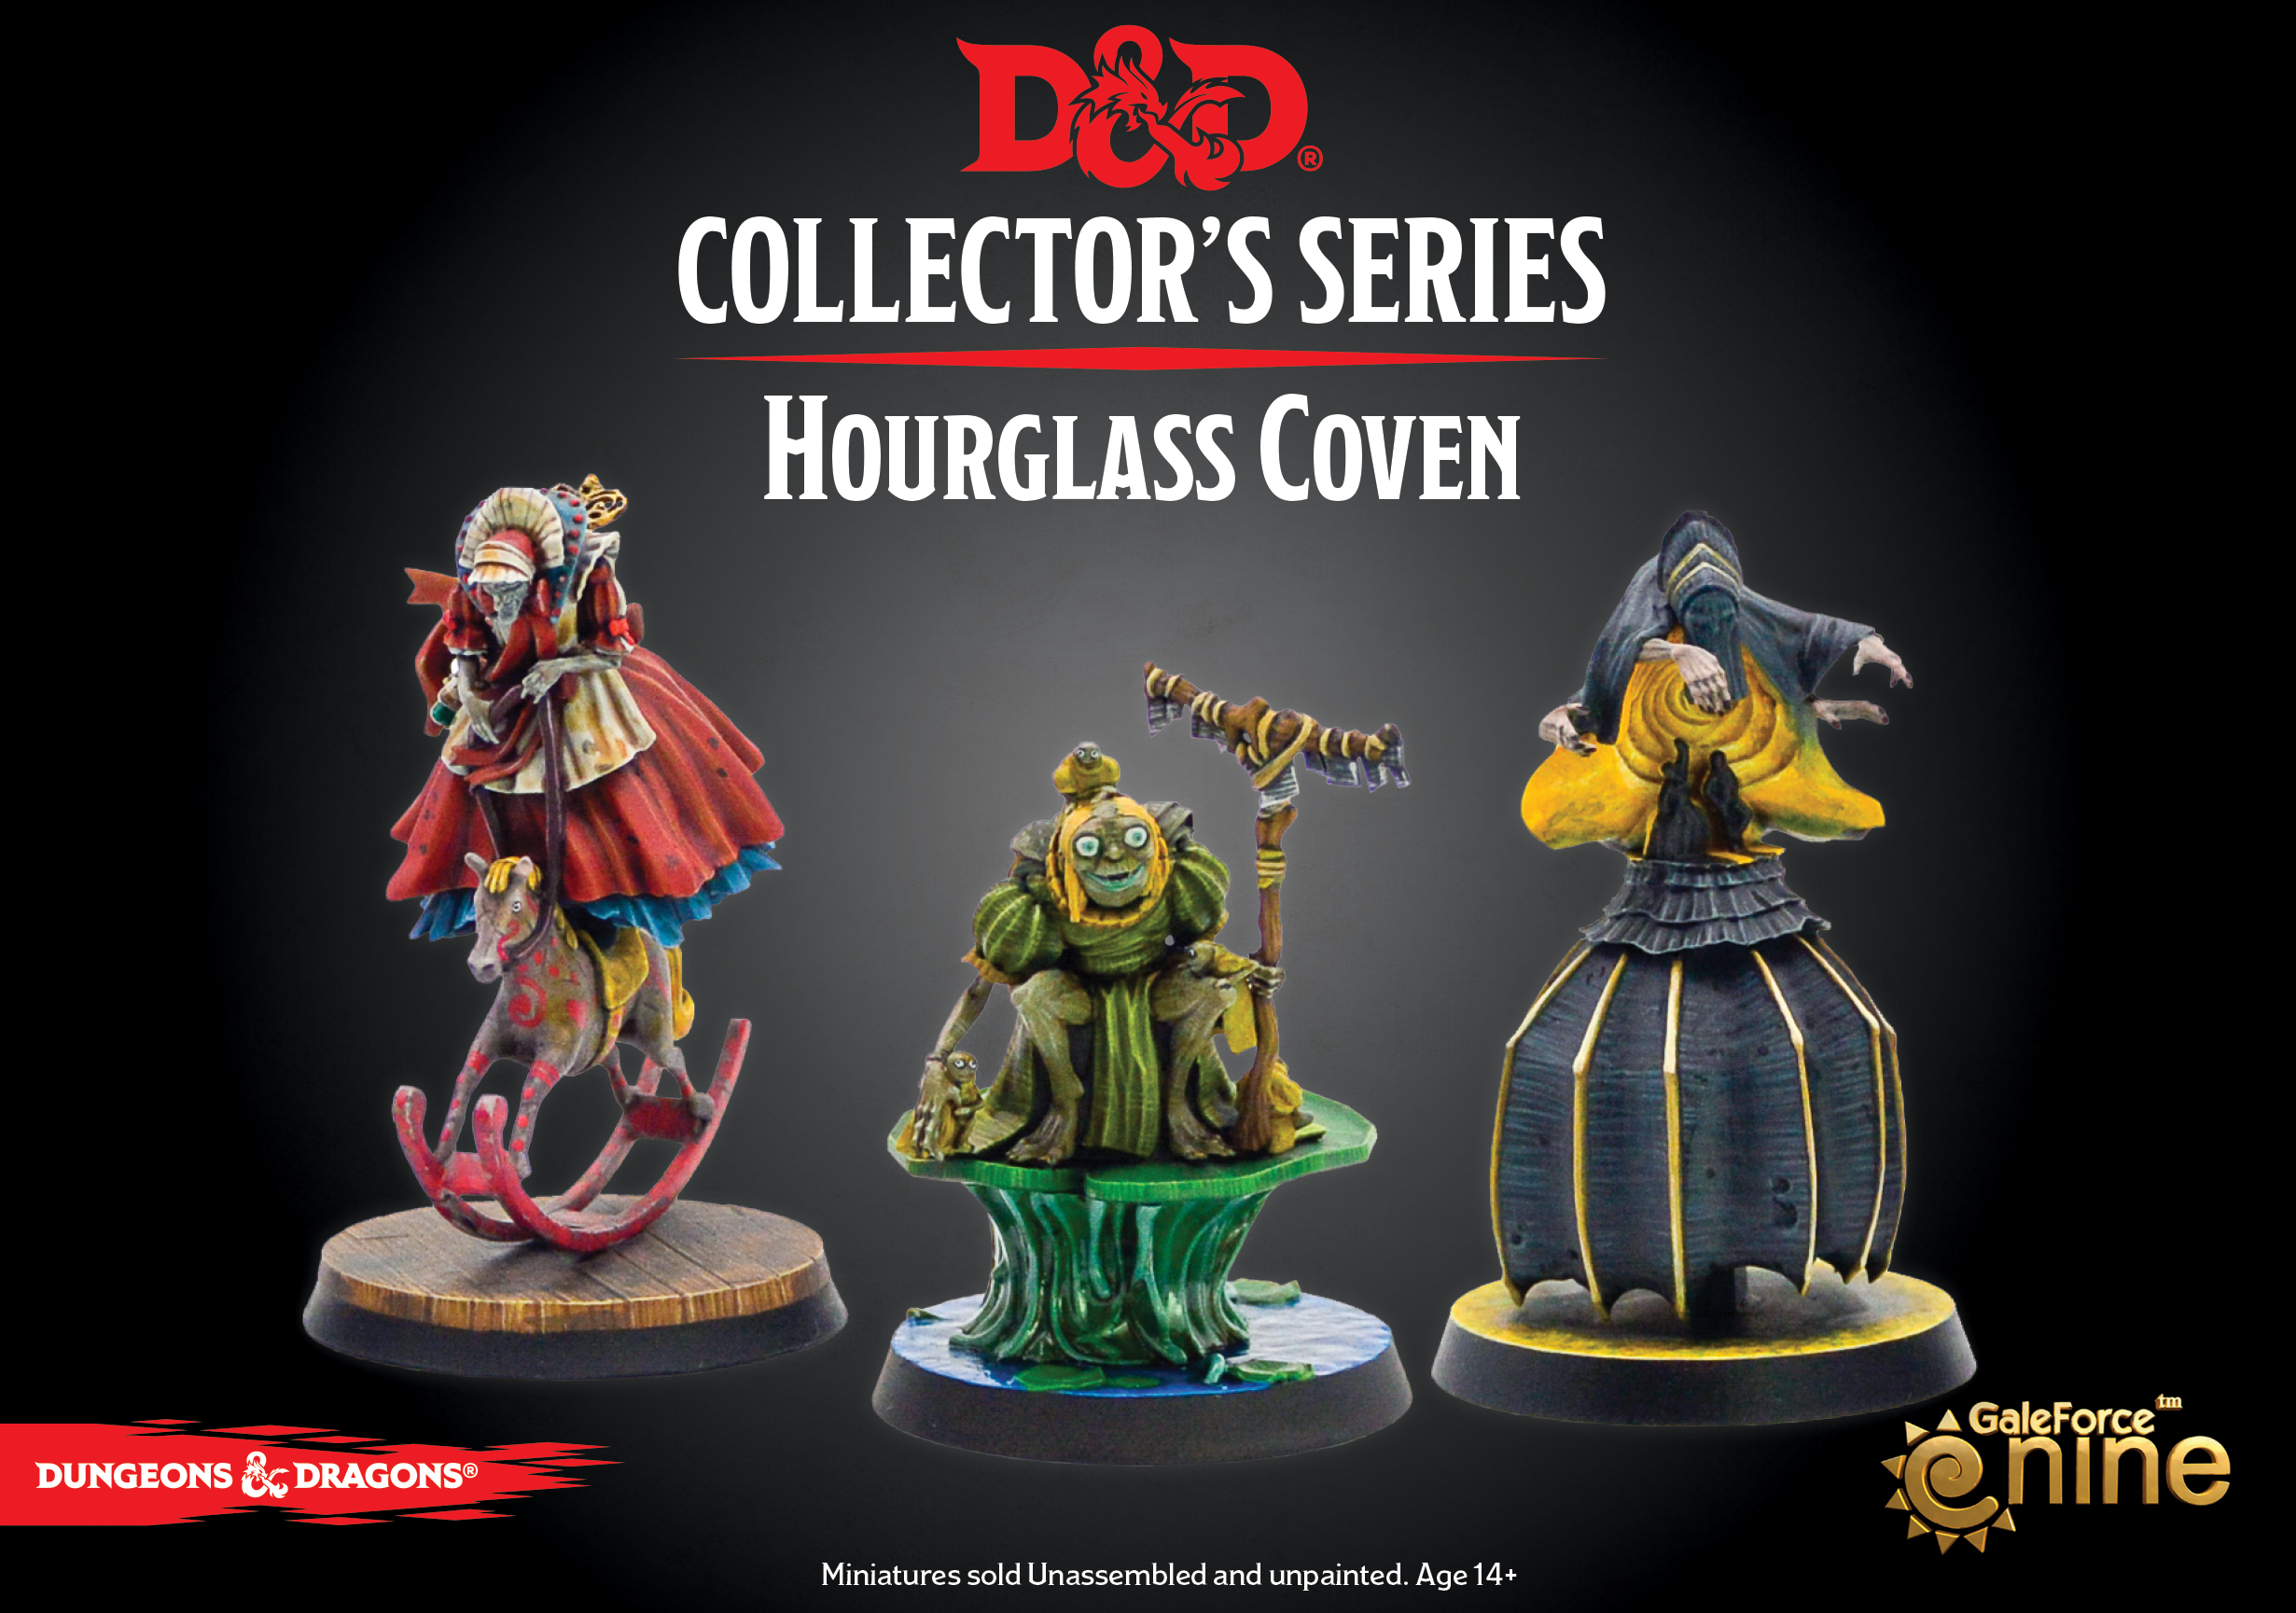 Hourglass Coven - Gale Force Nine